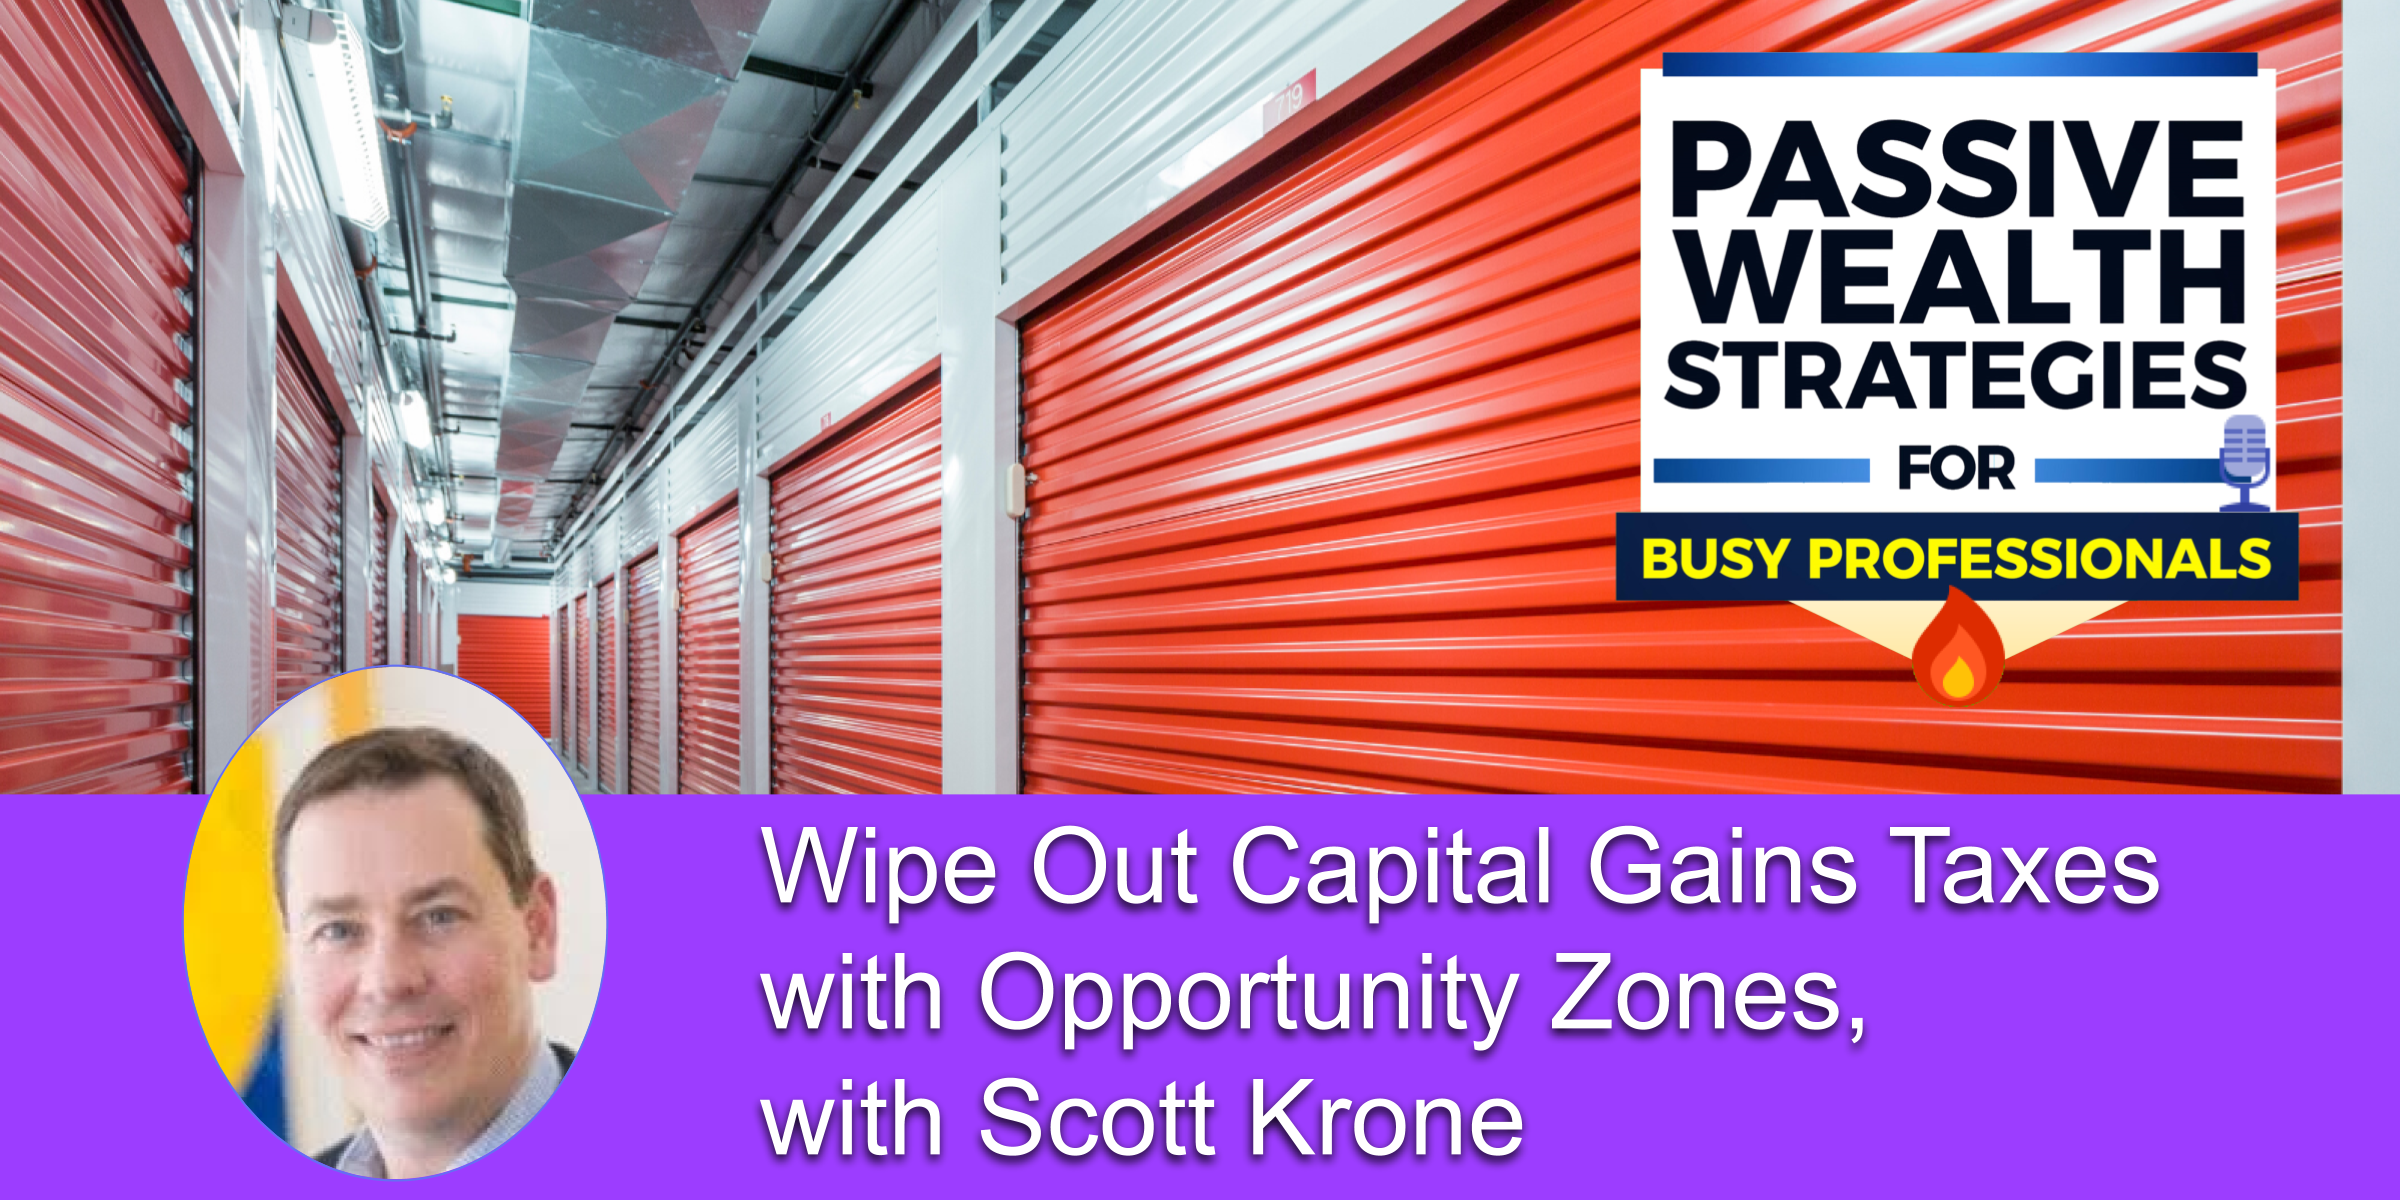 Wipe Out Capital Gains Taxes with Opportunity Zones, with Scott Krone